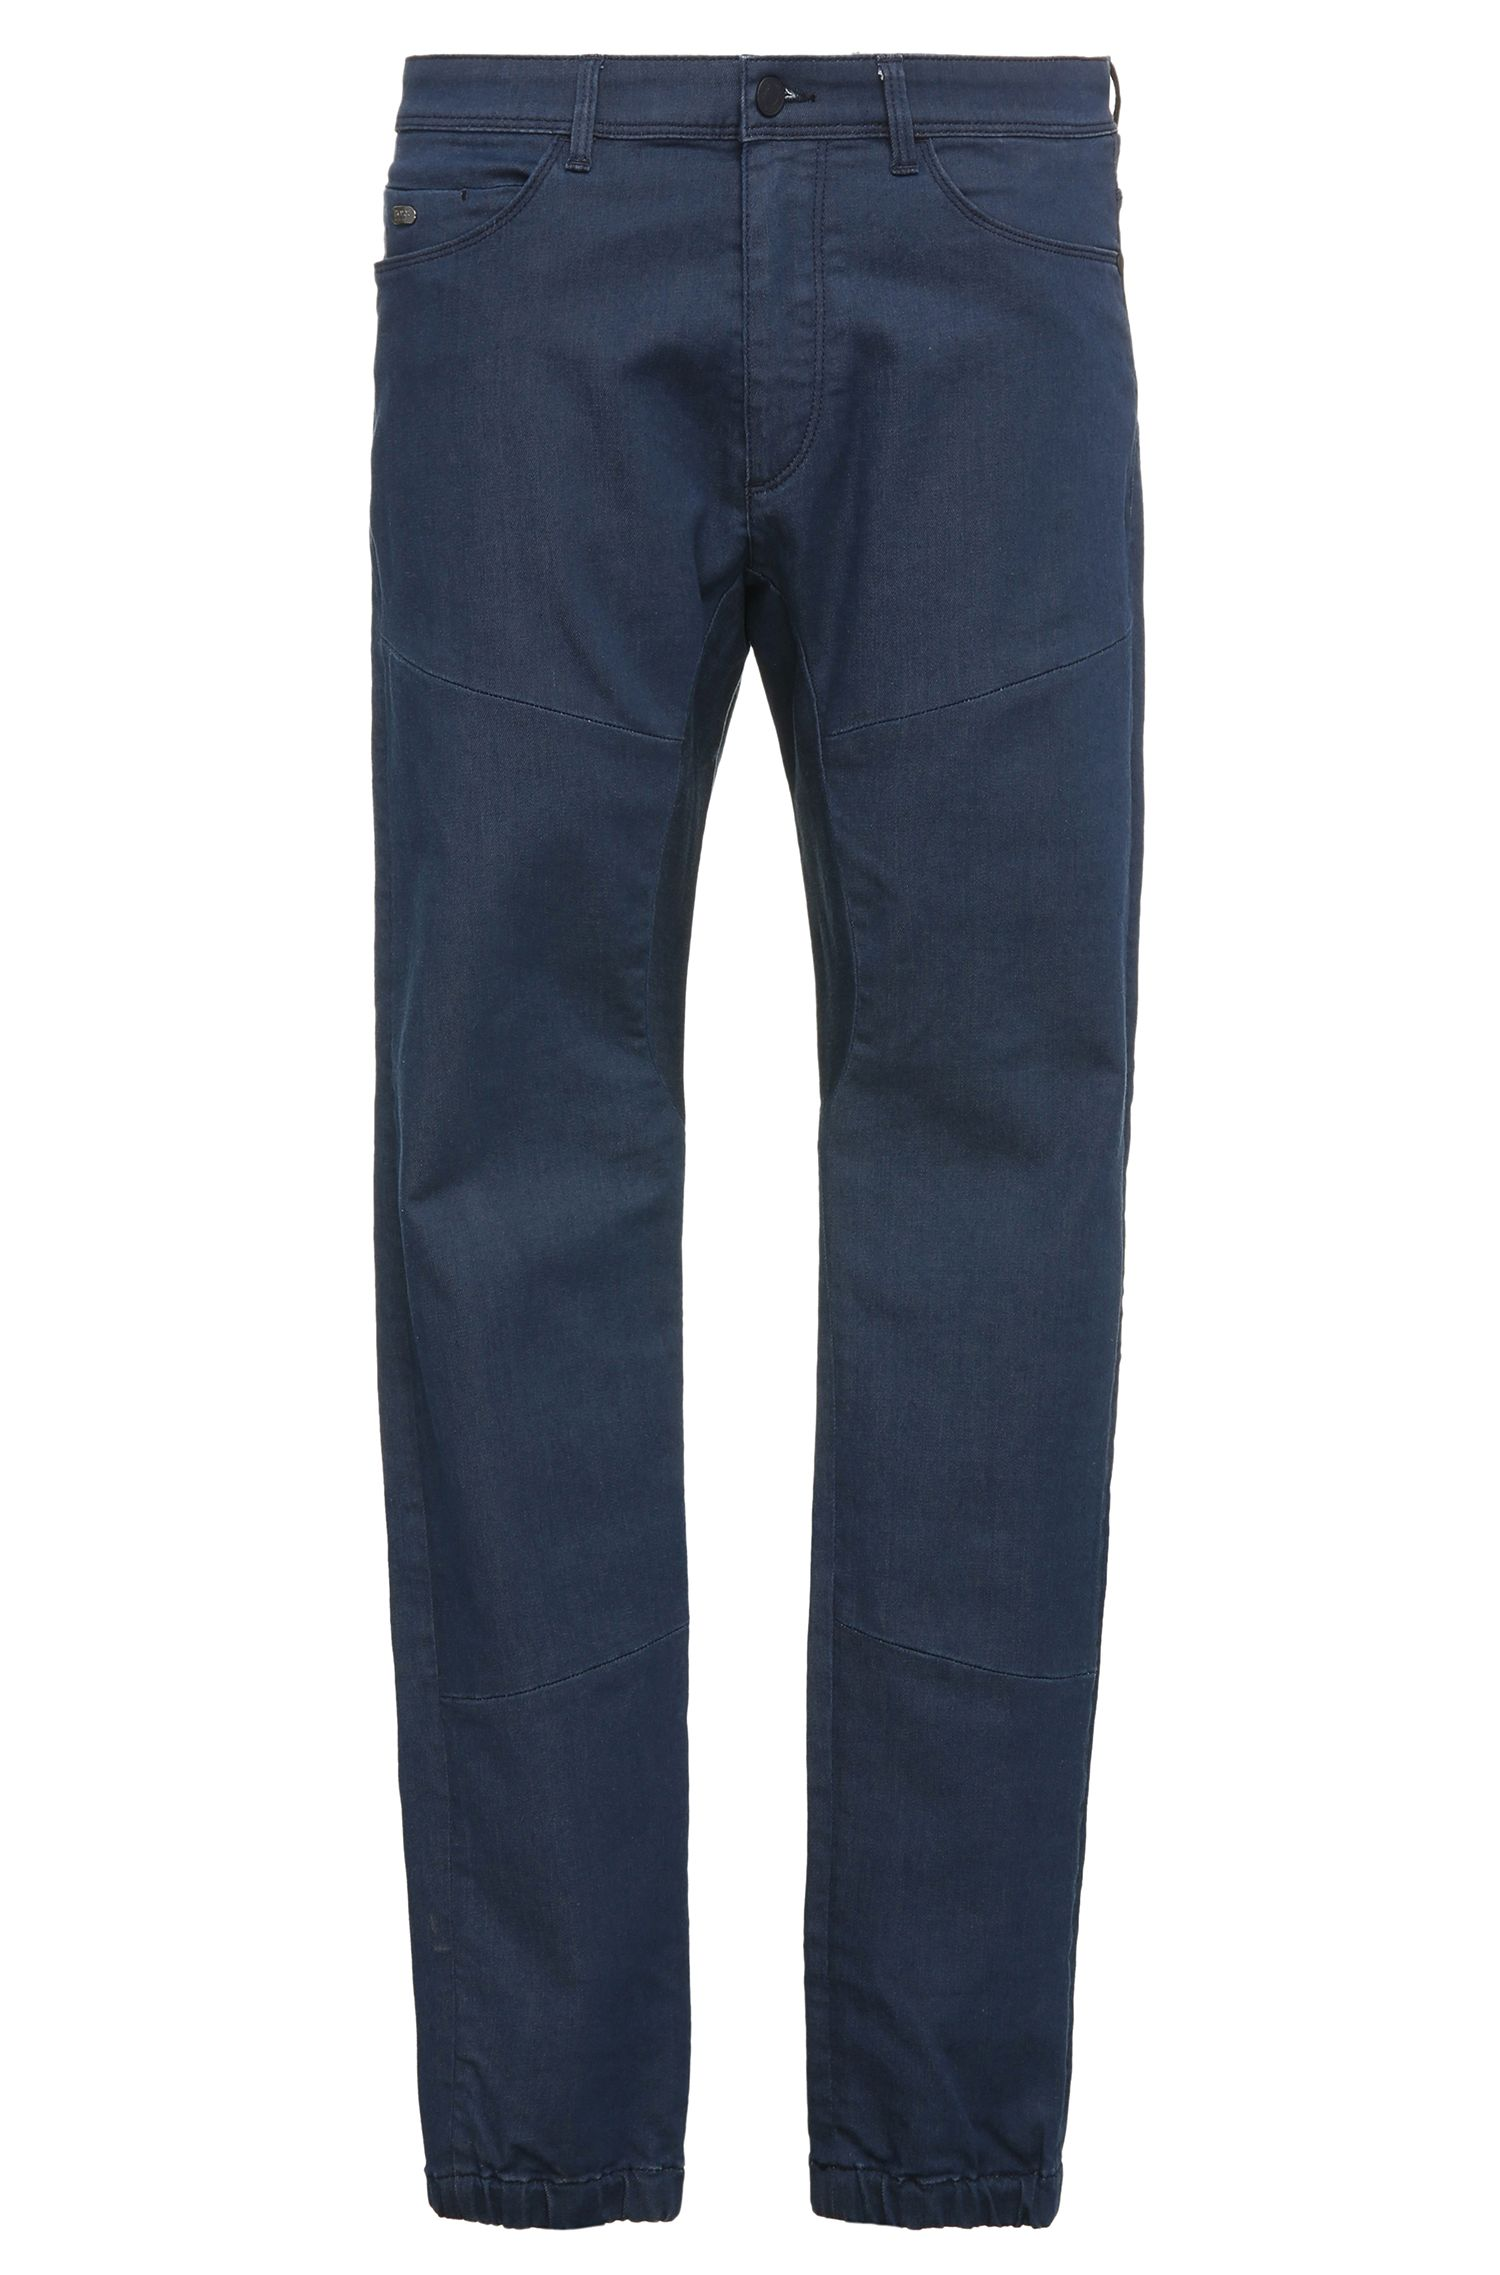 Jeans Tapered Fit en coton extensible : « Danyel »